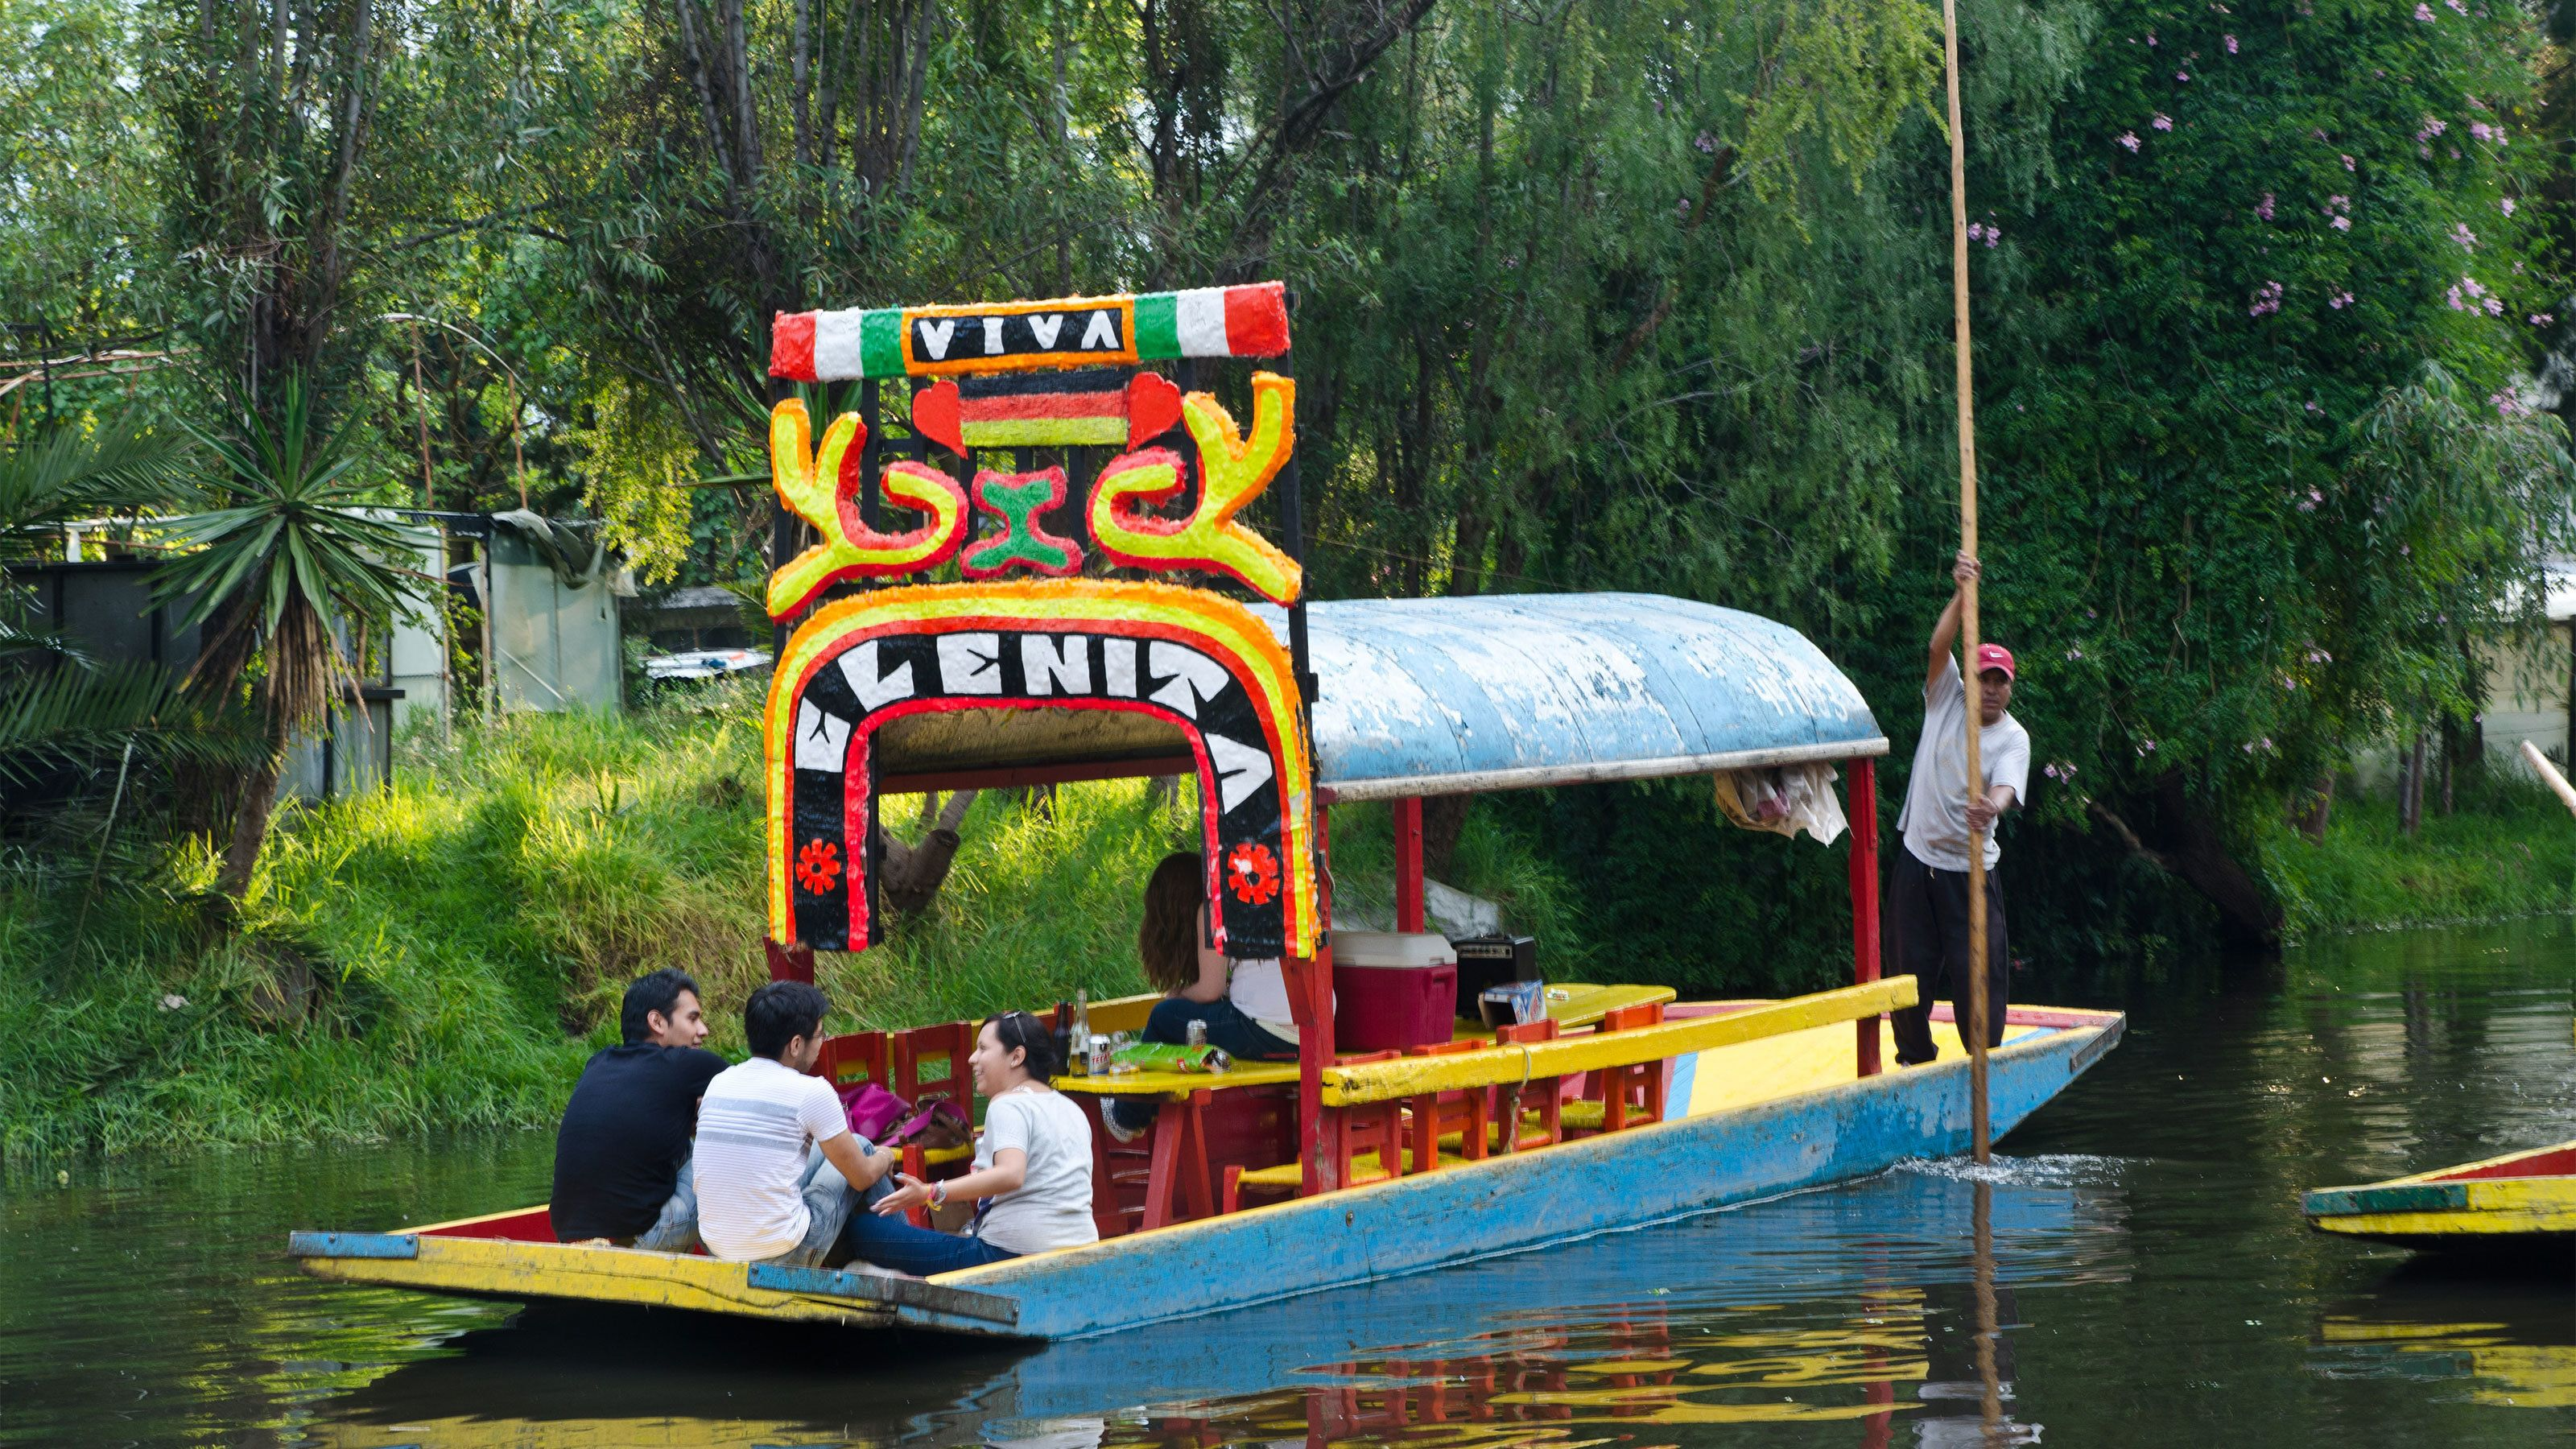 Small group of people on a colorful boat sailing down the Xochimilco Canals